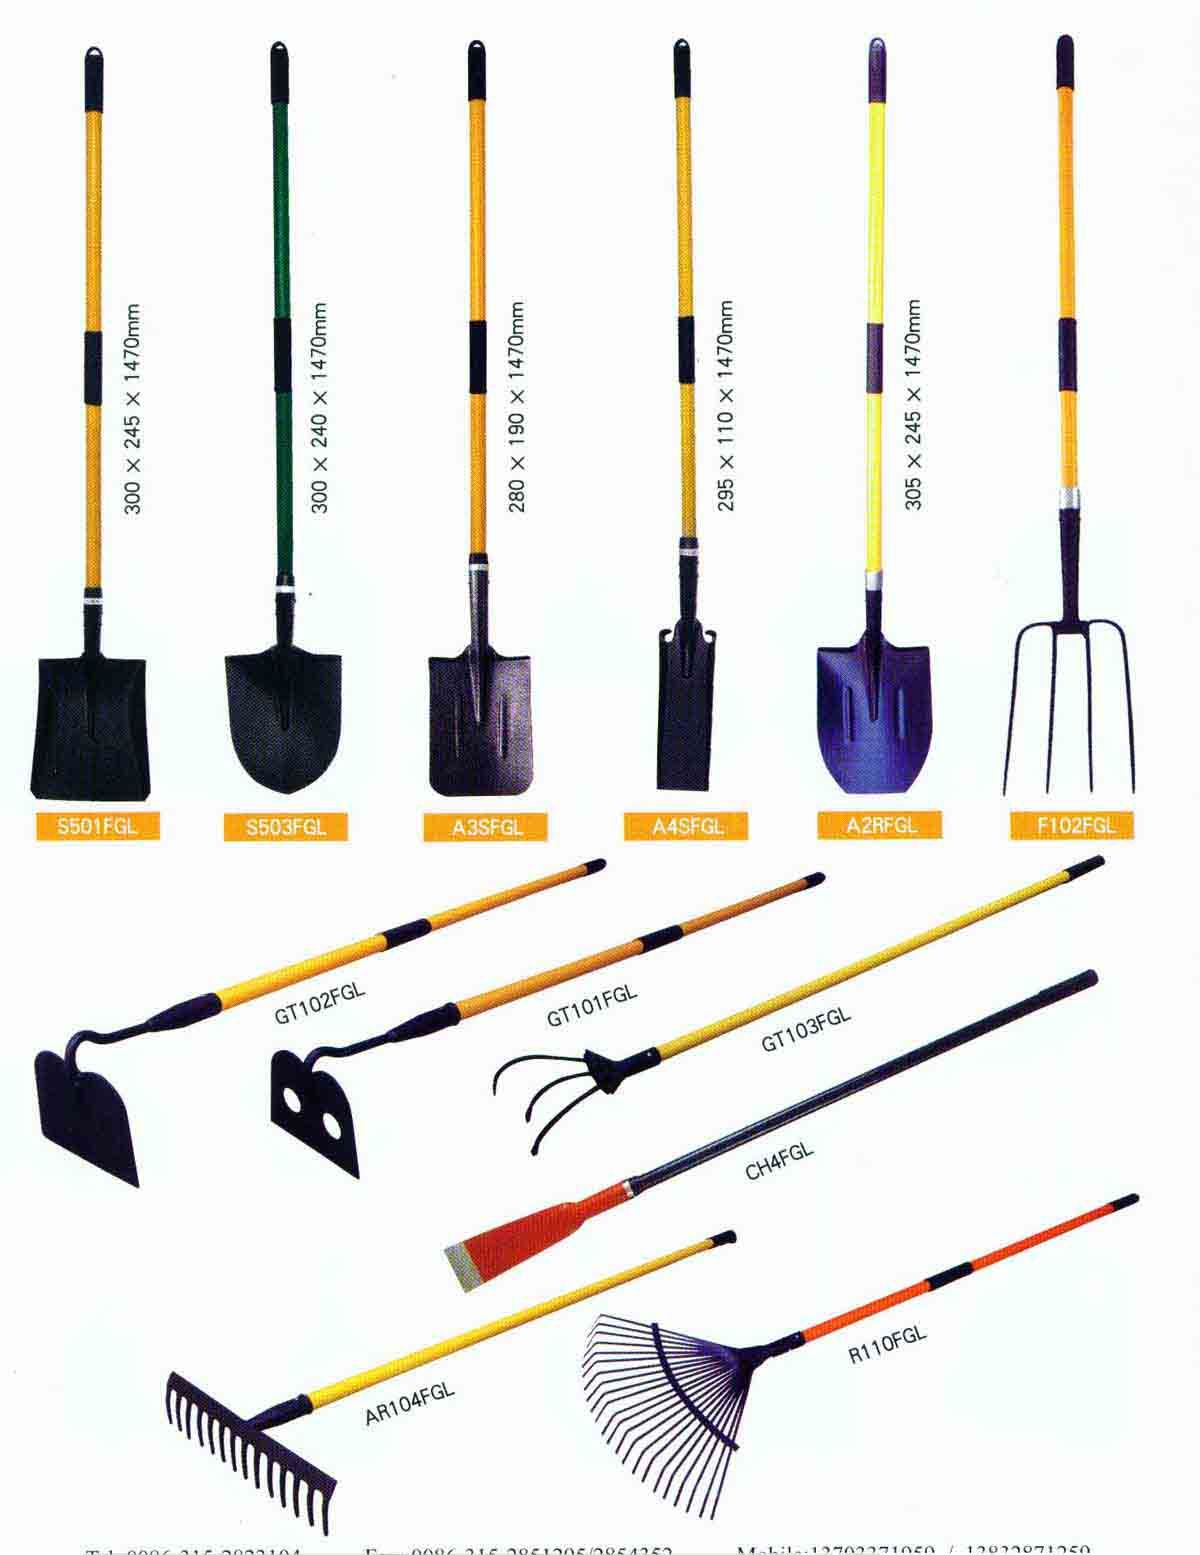 Hand farm tools list for Common garden hand tools